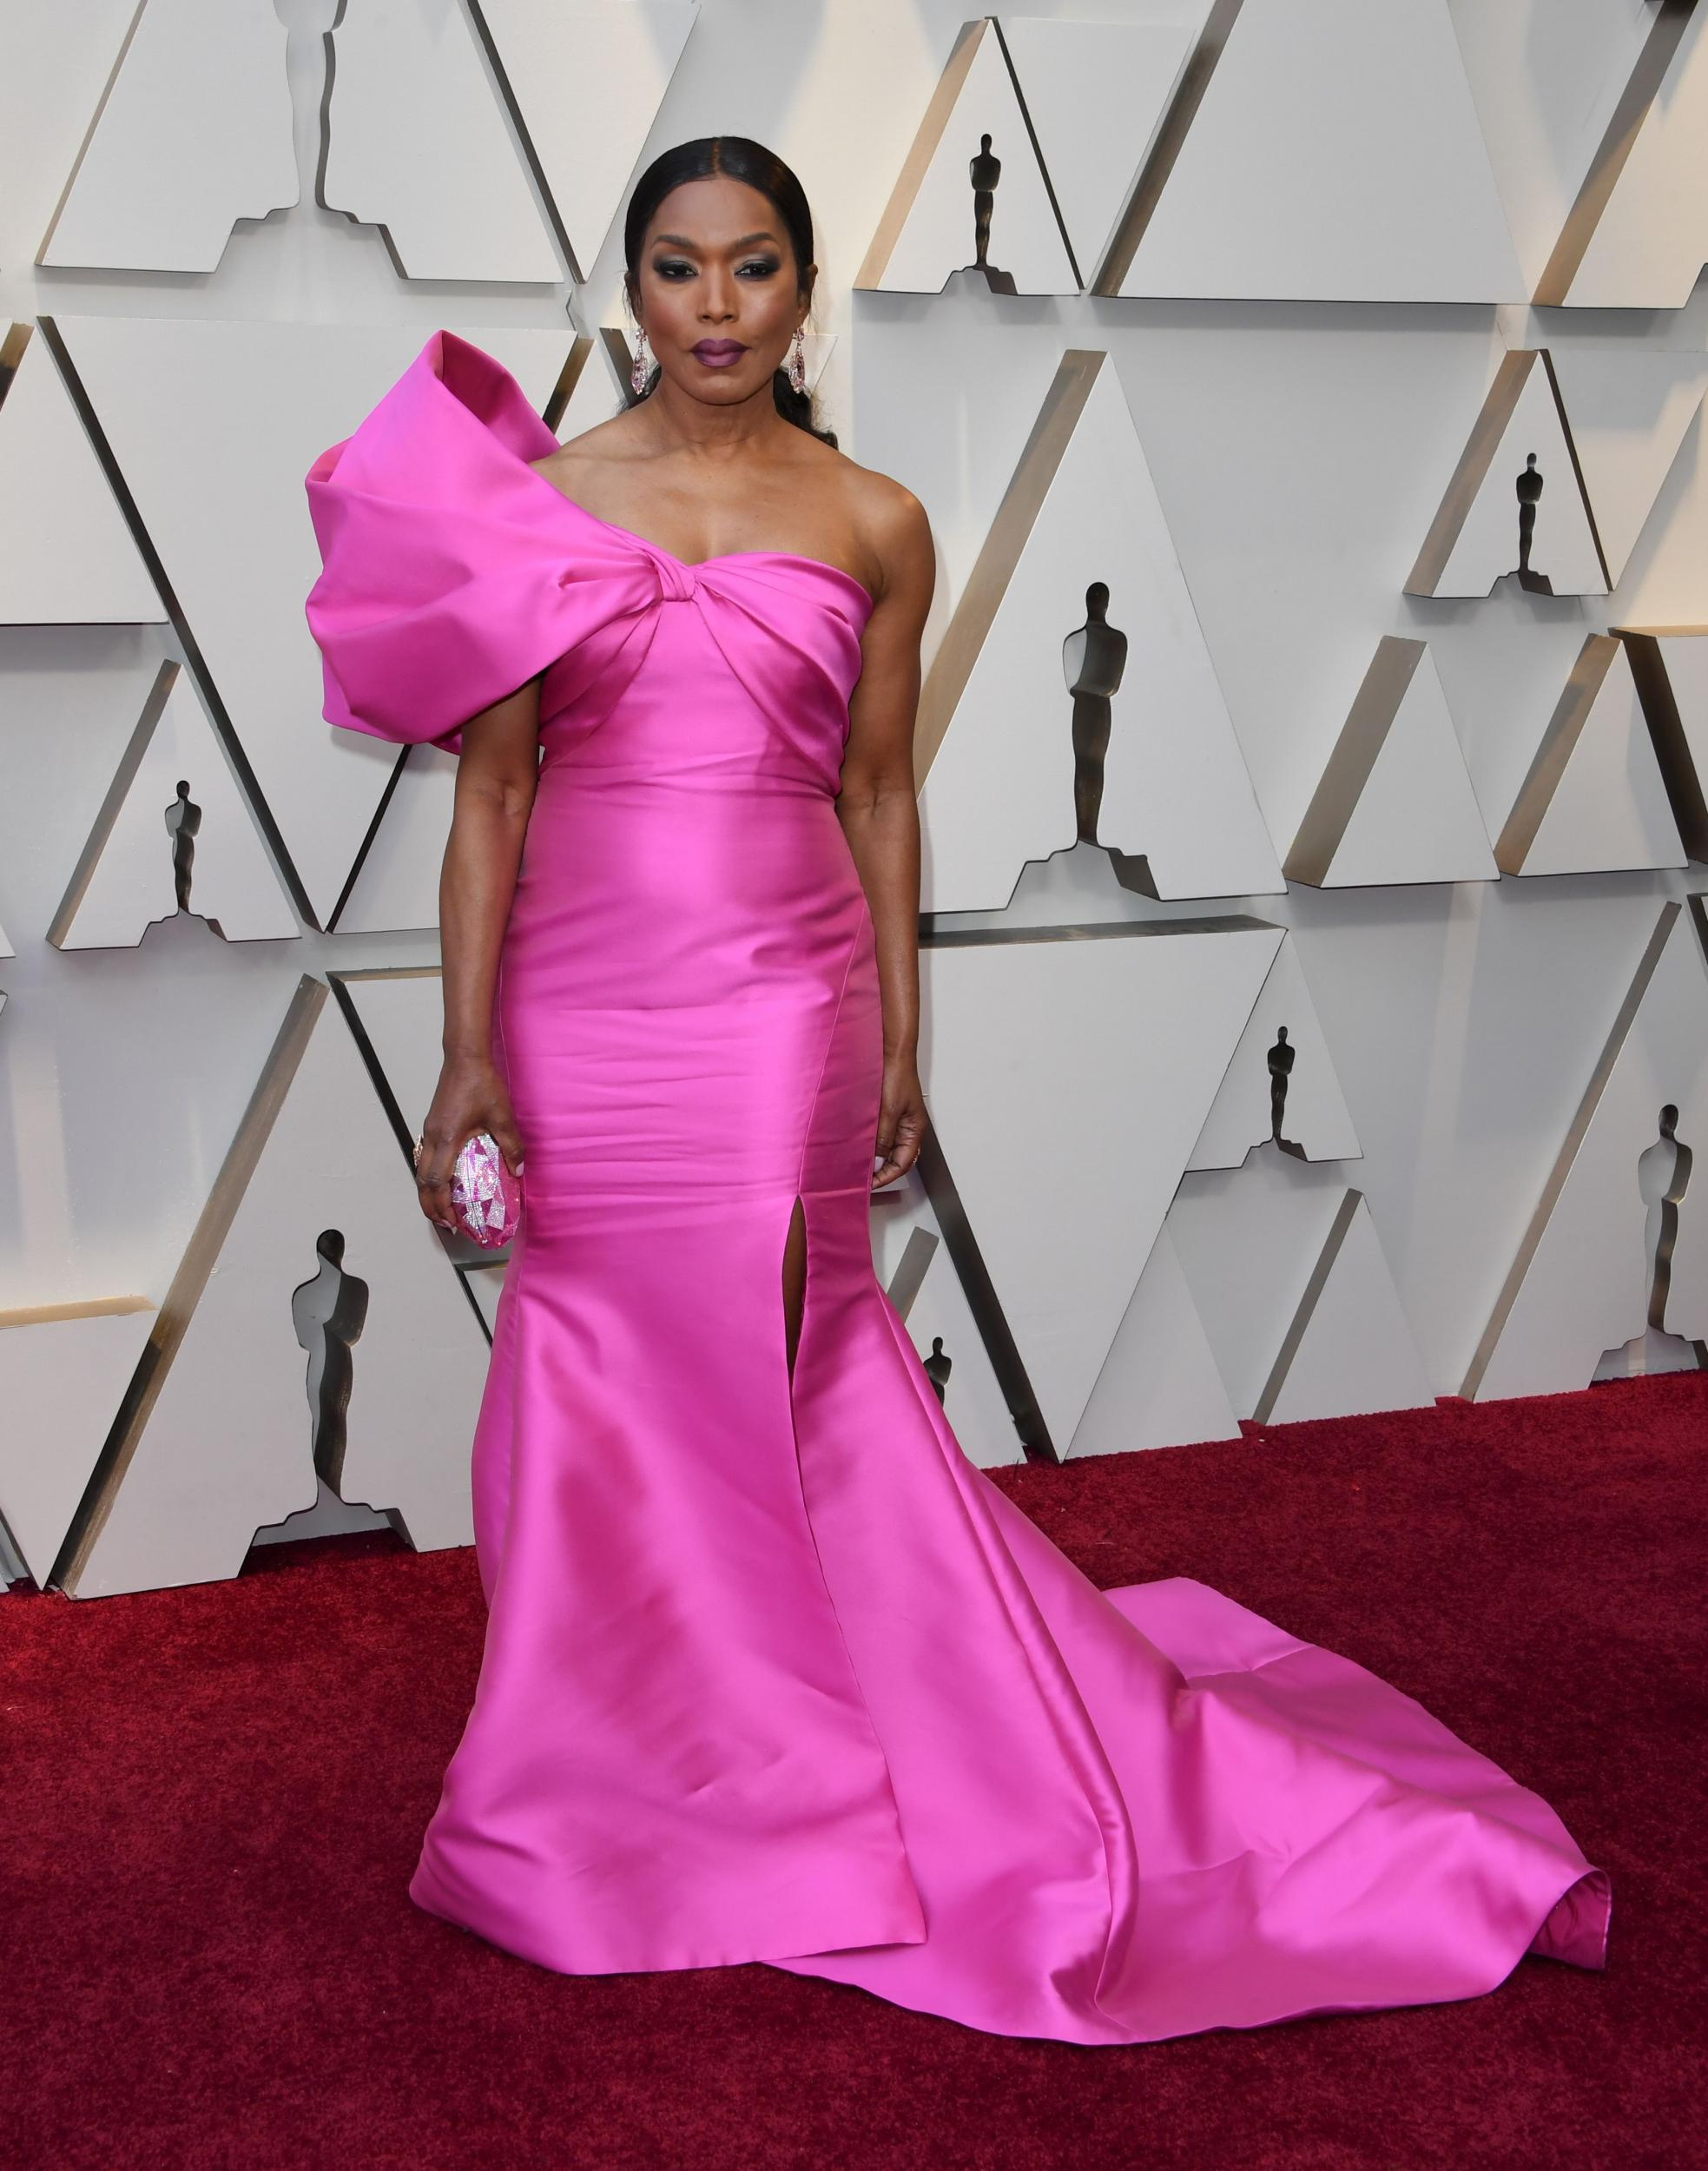 Oscars 2019: Pink outfits dominated the red carpet from